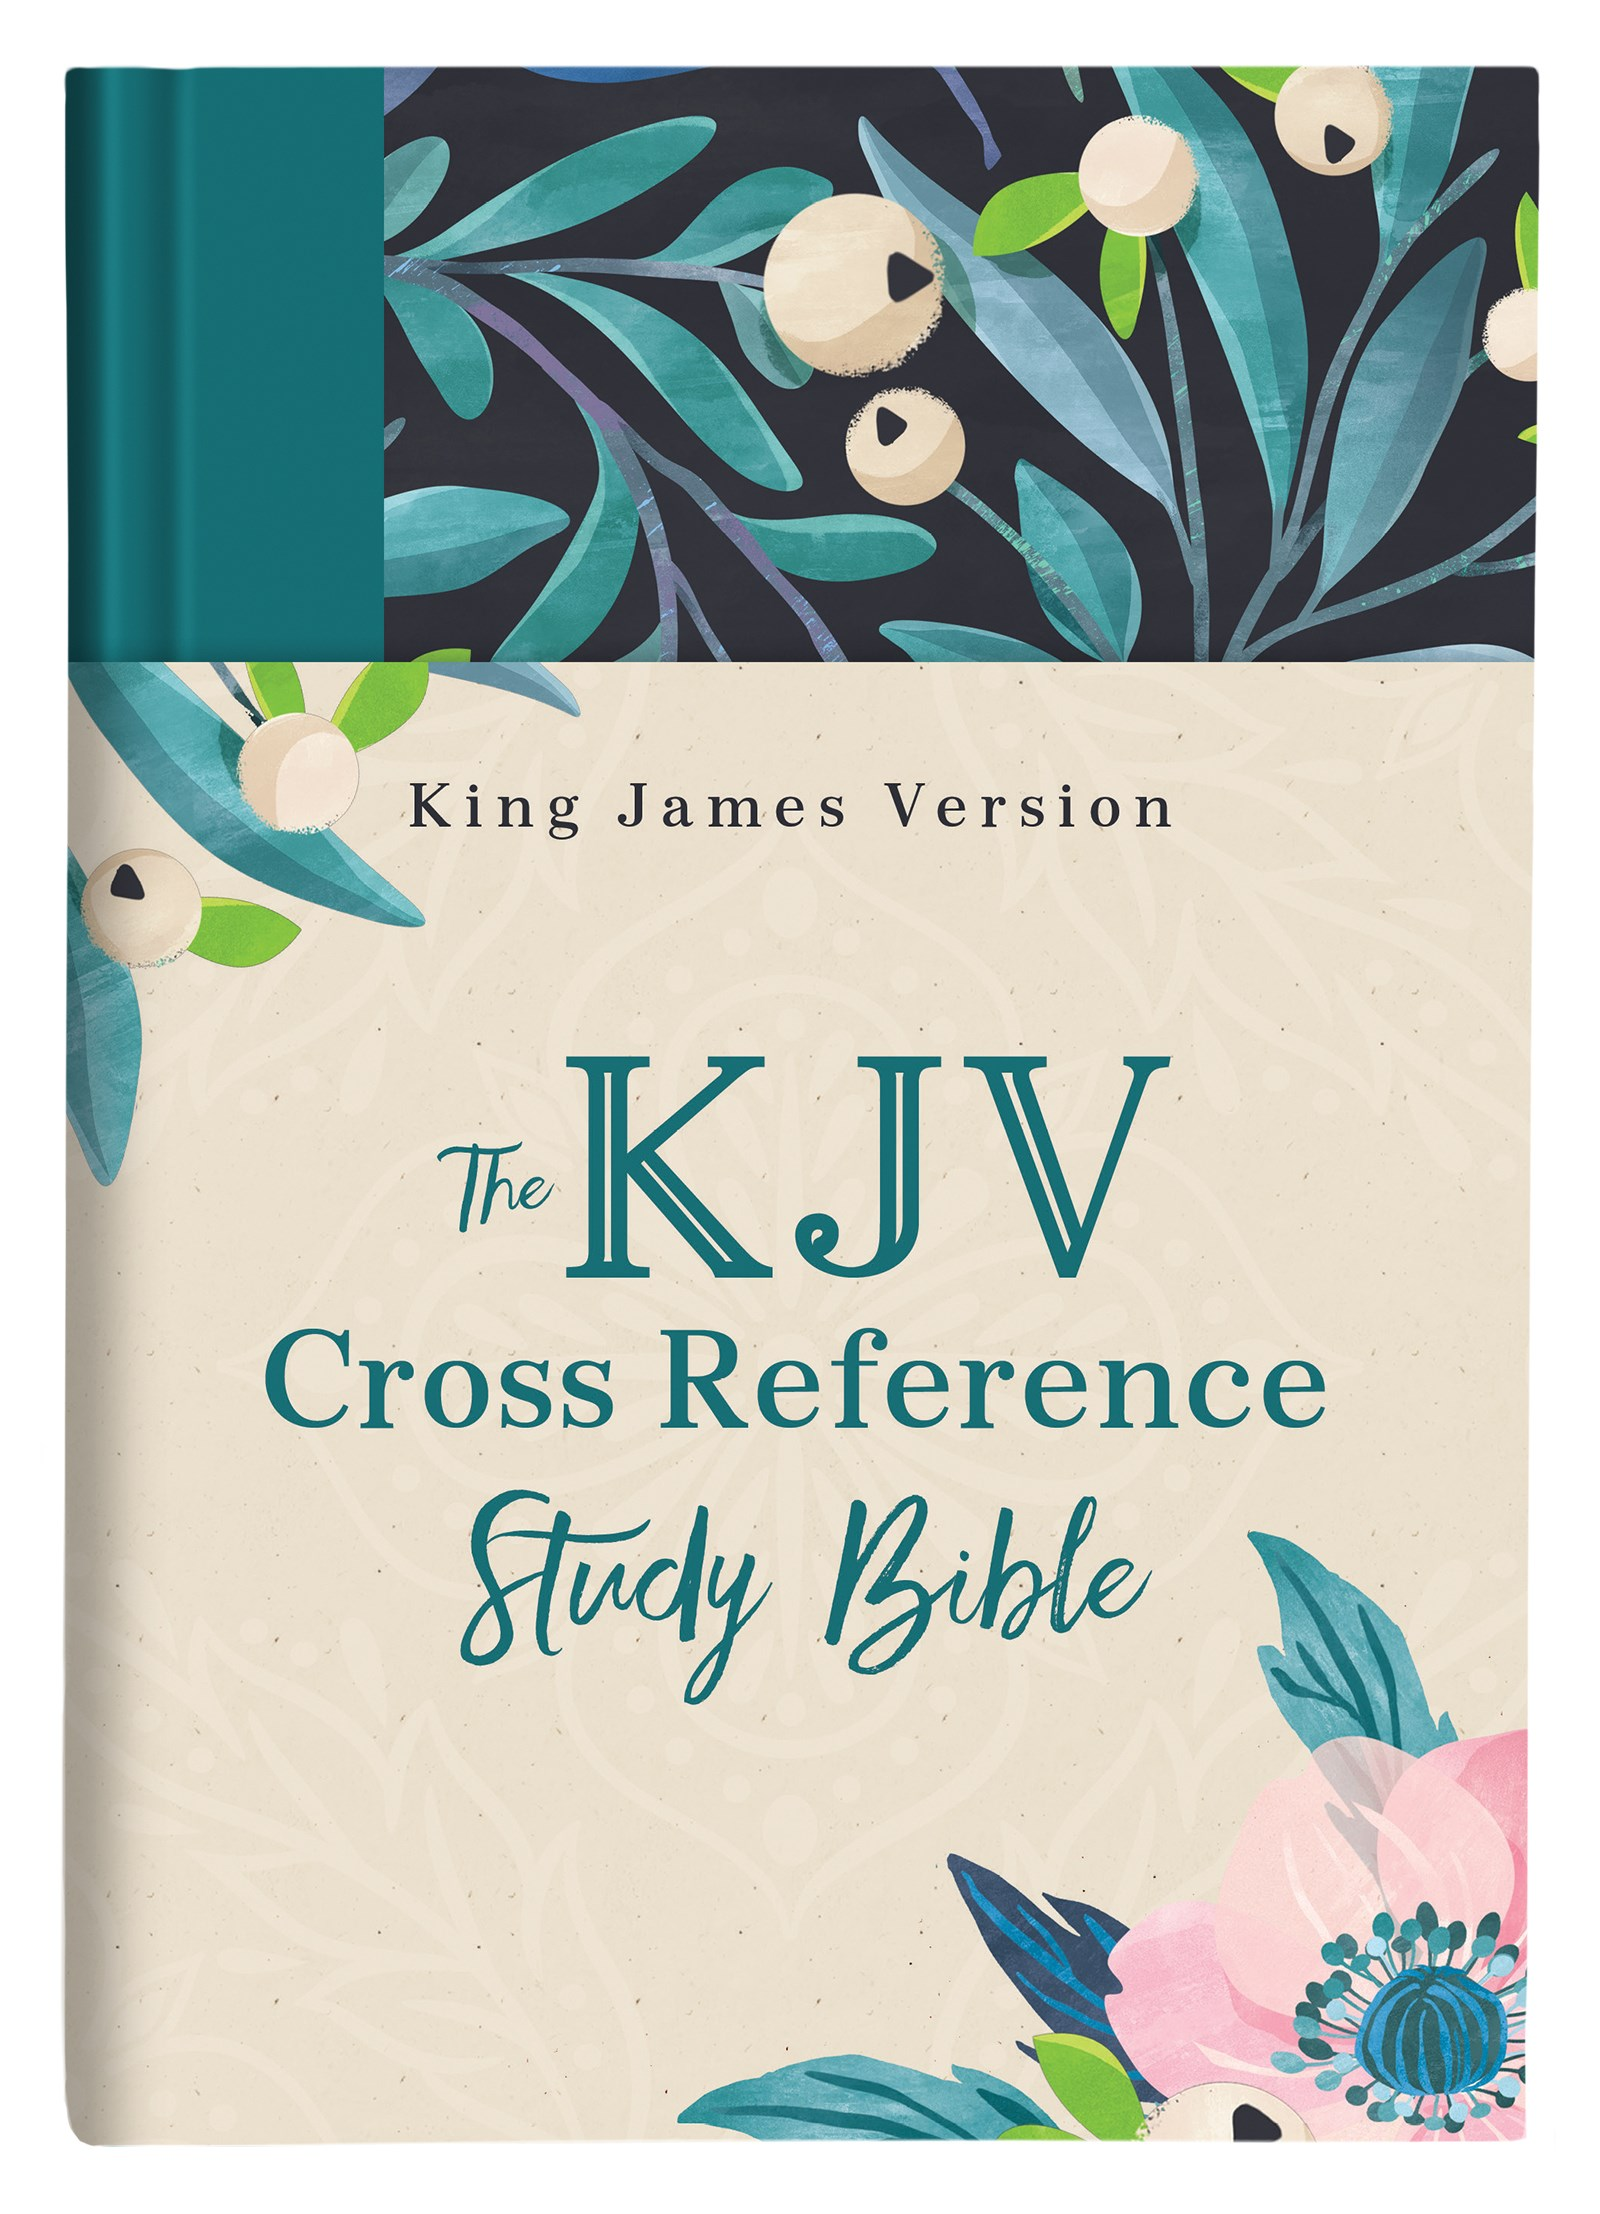 KJV Cross Reference Study Bible-Turquoise Floral Hardcover